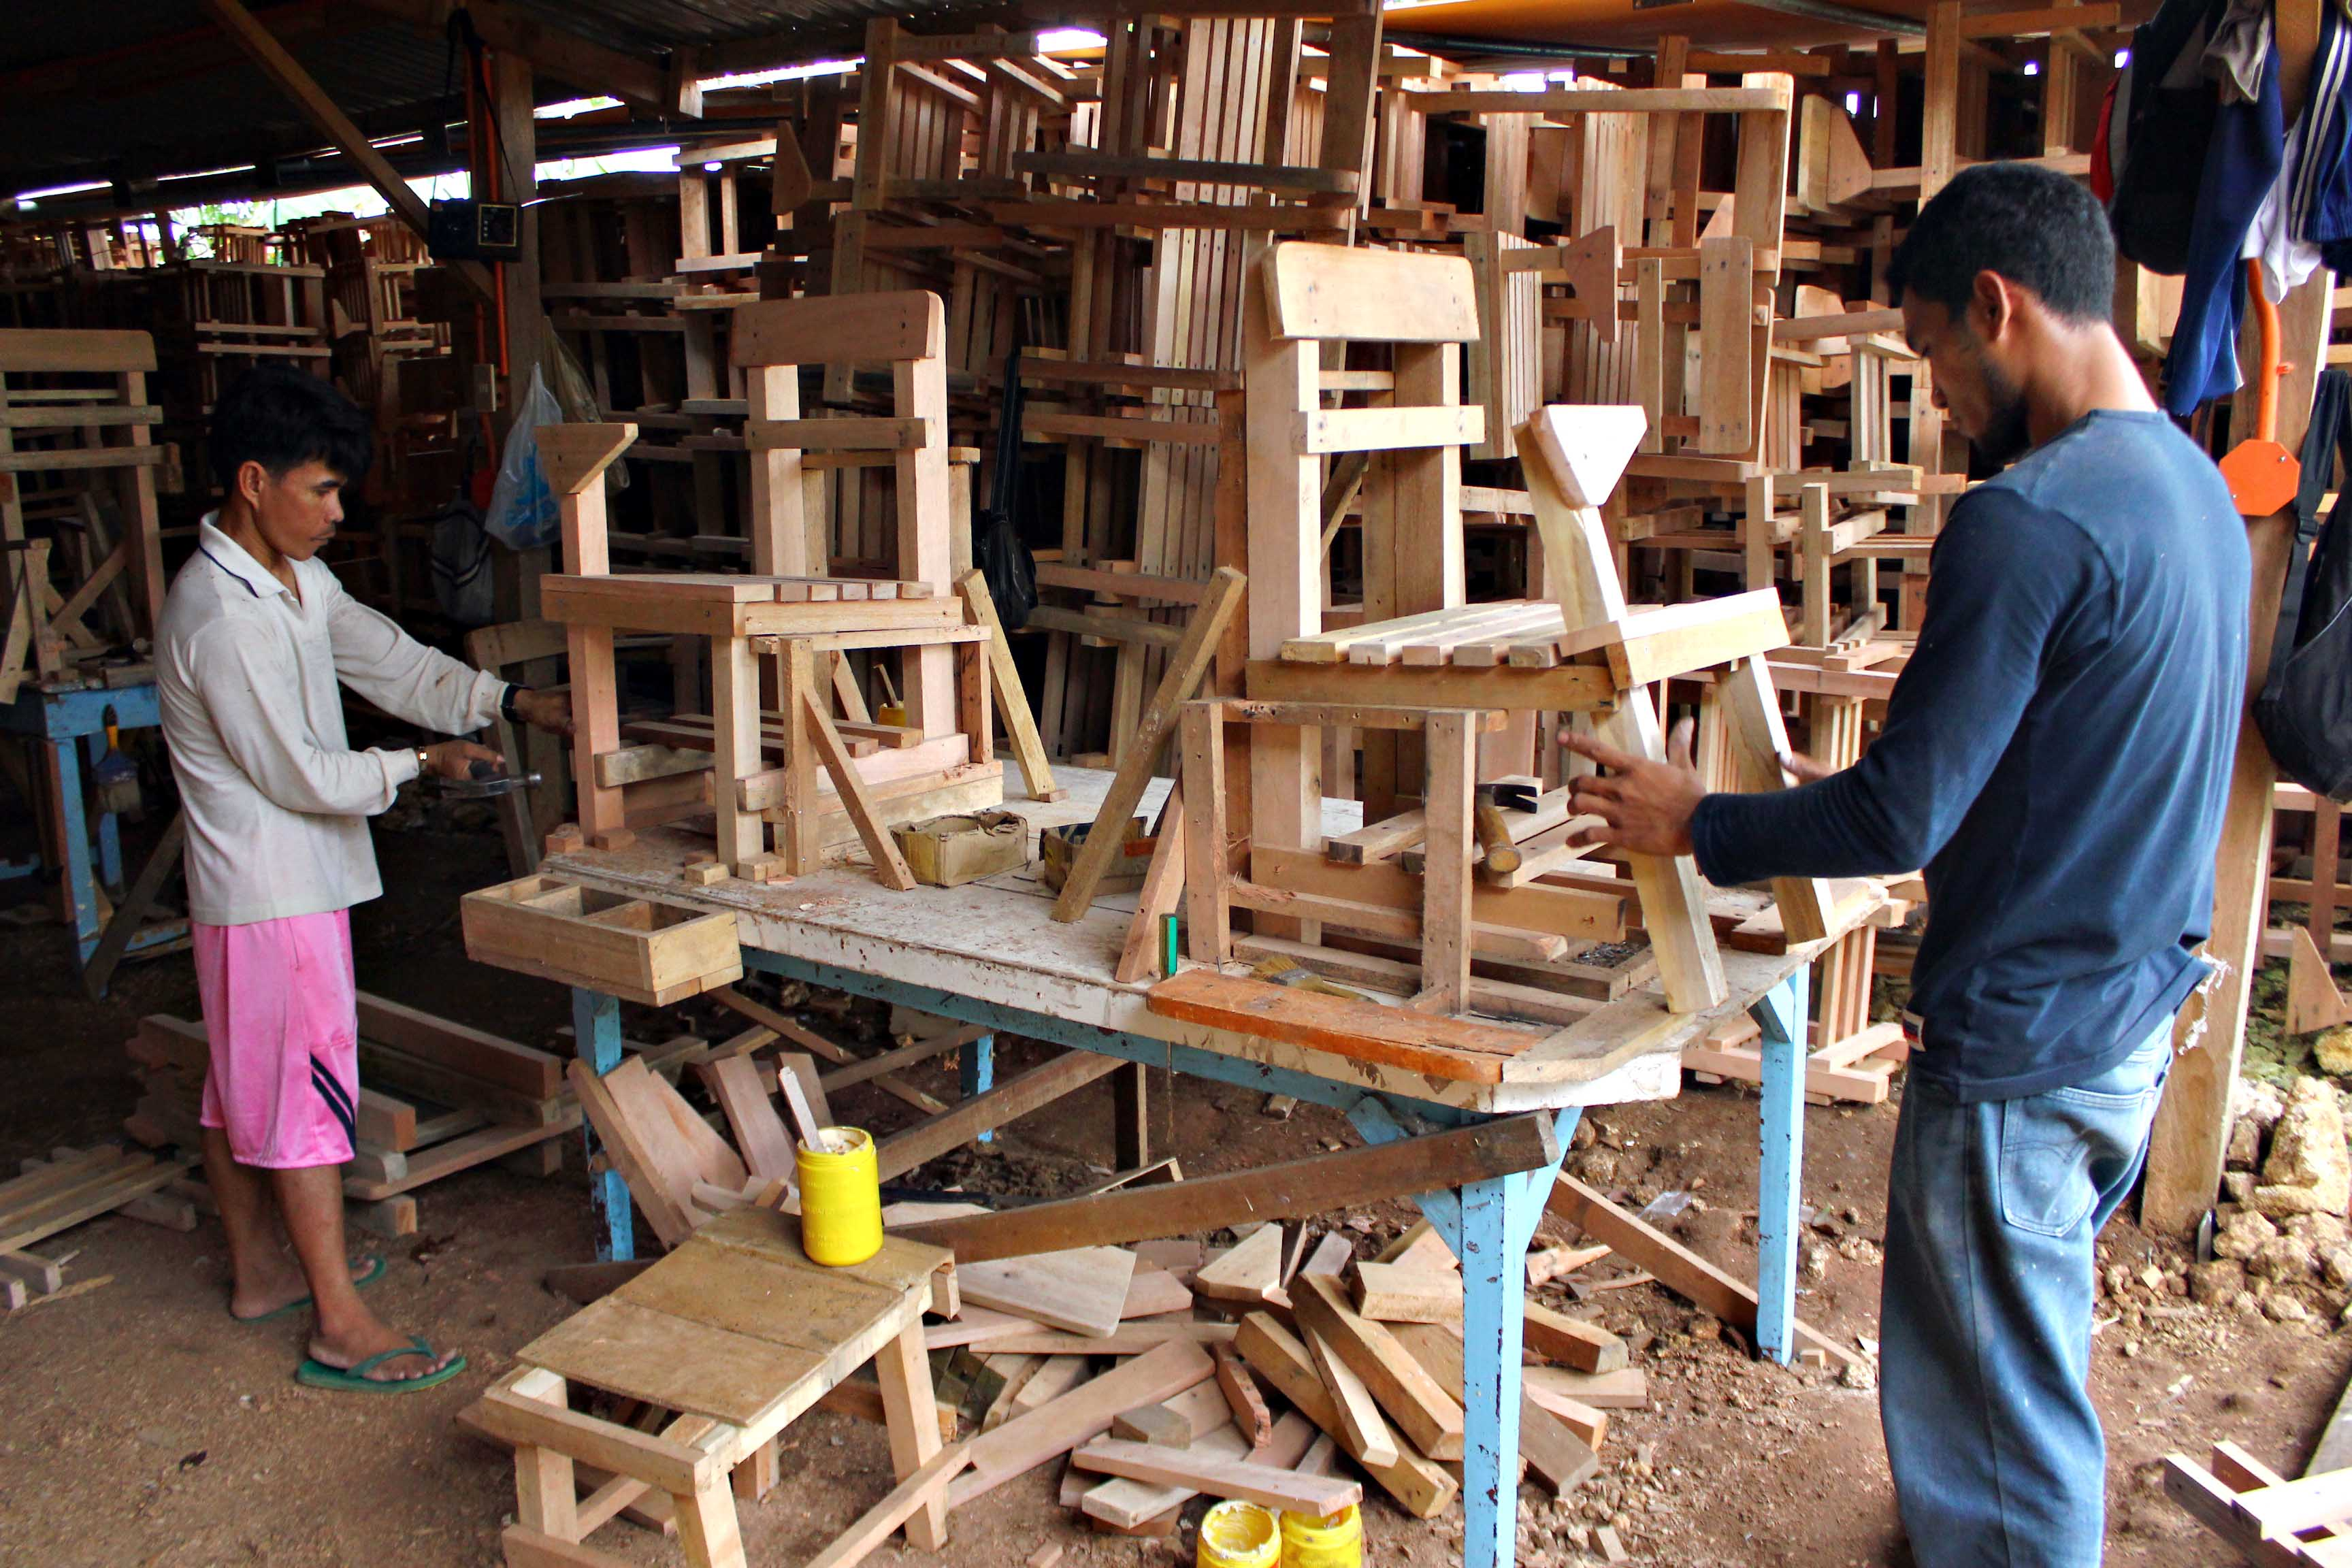 illegal lumber transformed to desks